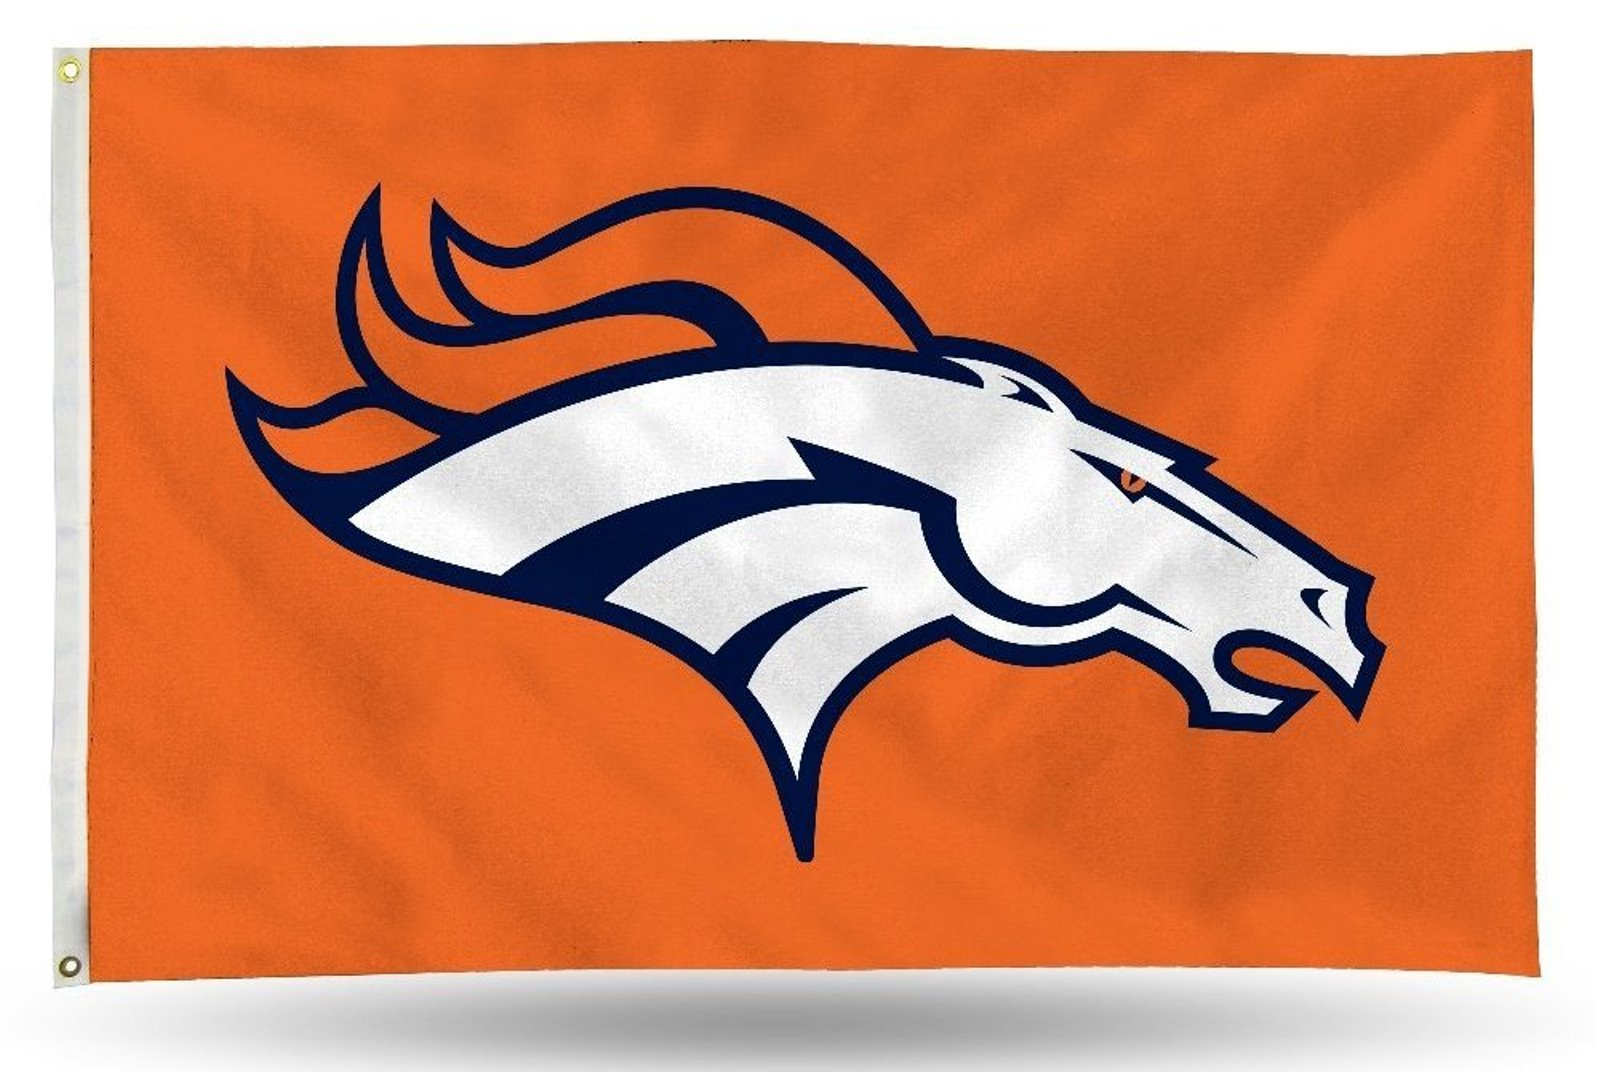 Details about Denver Broncos LOGO Rico 3x5 Flag w/grommets Outdoor House  Banner Football.